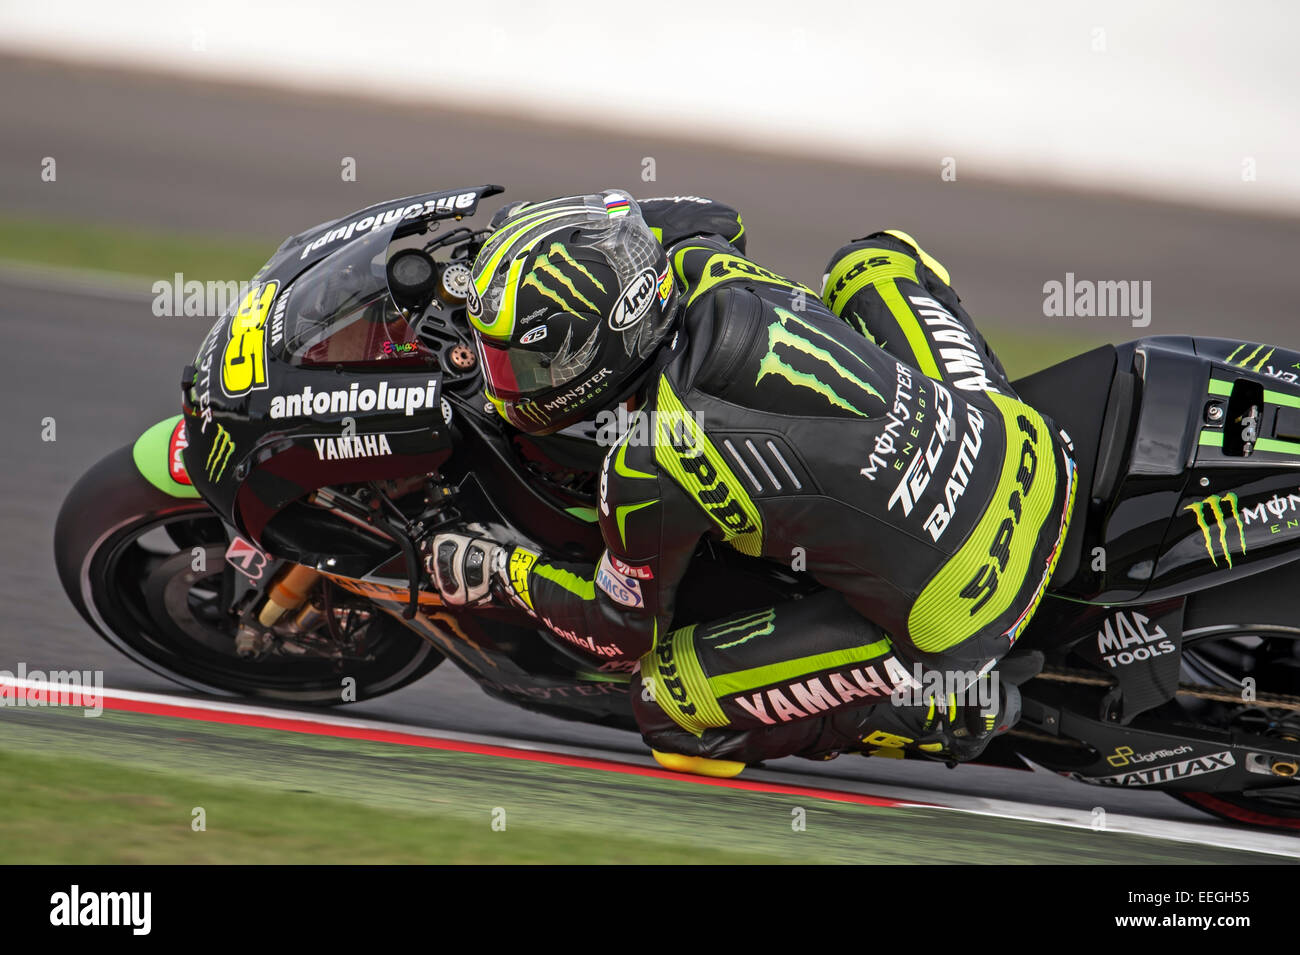 cal cruchlow, tech 3 yamaha, 2013 - Stock Image